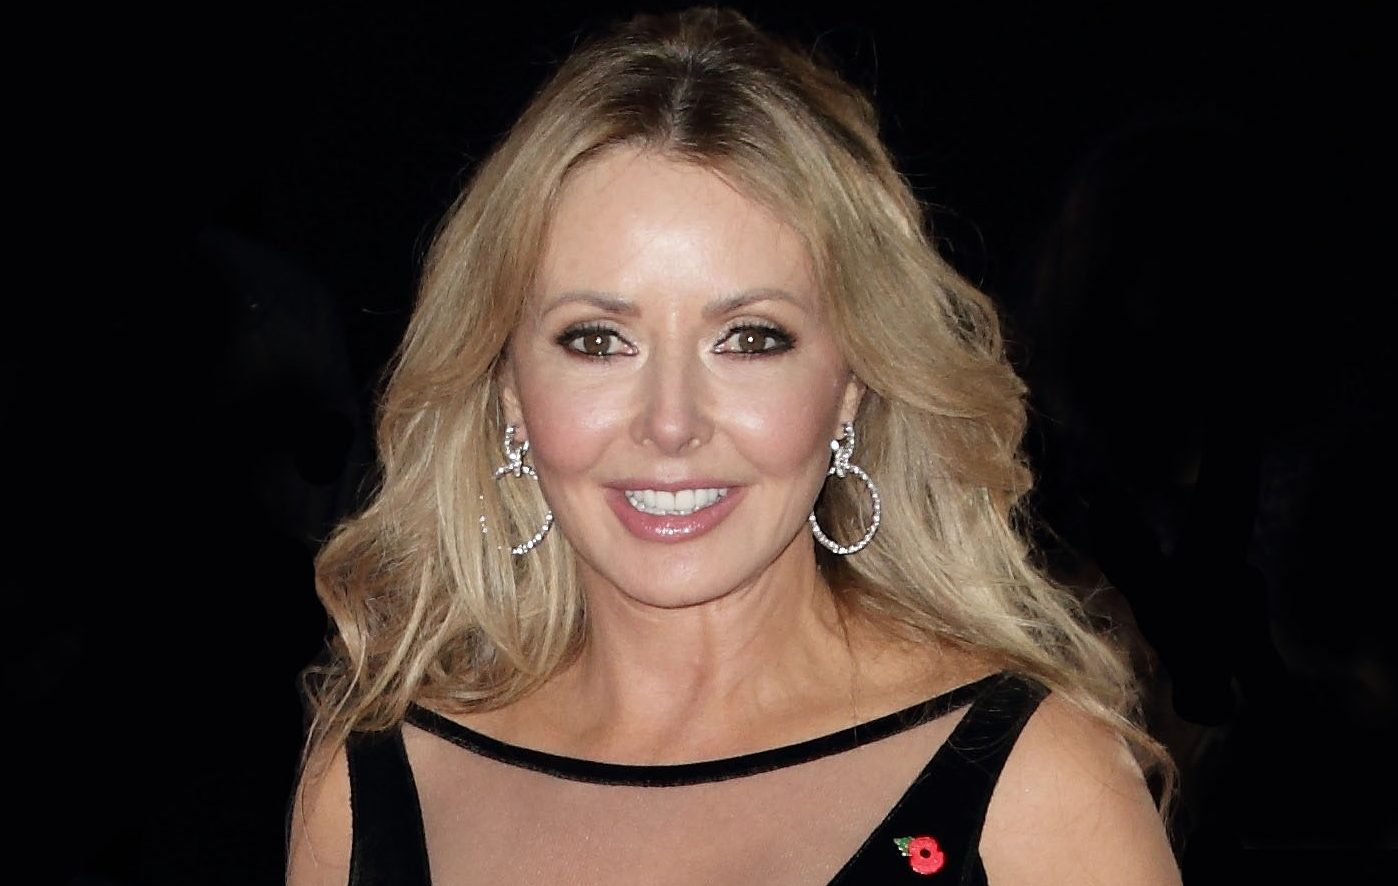 Fans concerned about Carol Vorderman's strange appearance on The One Show